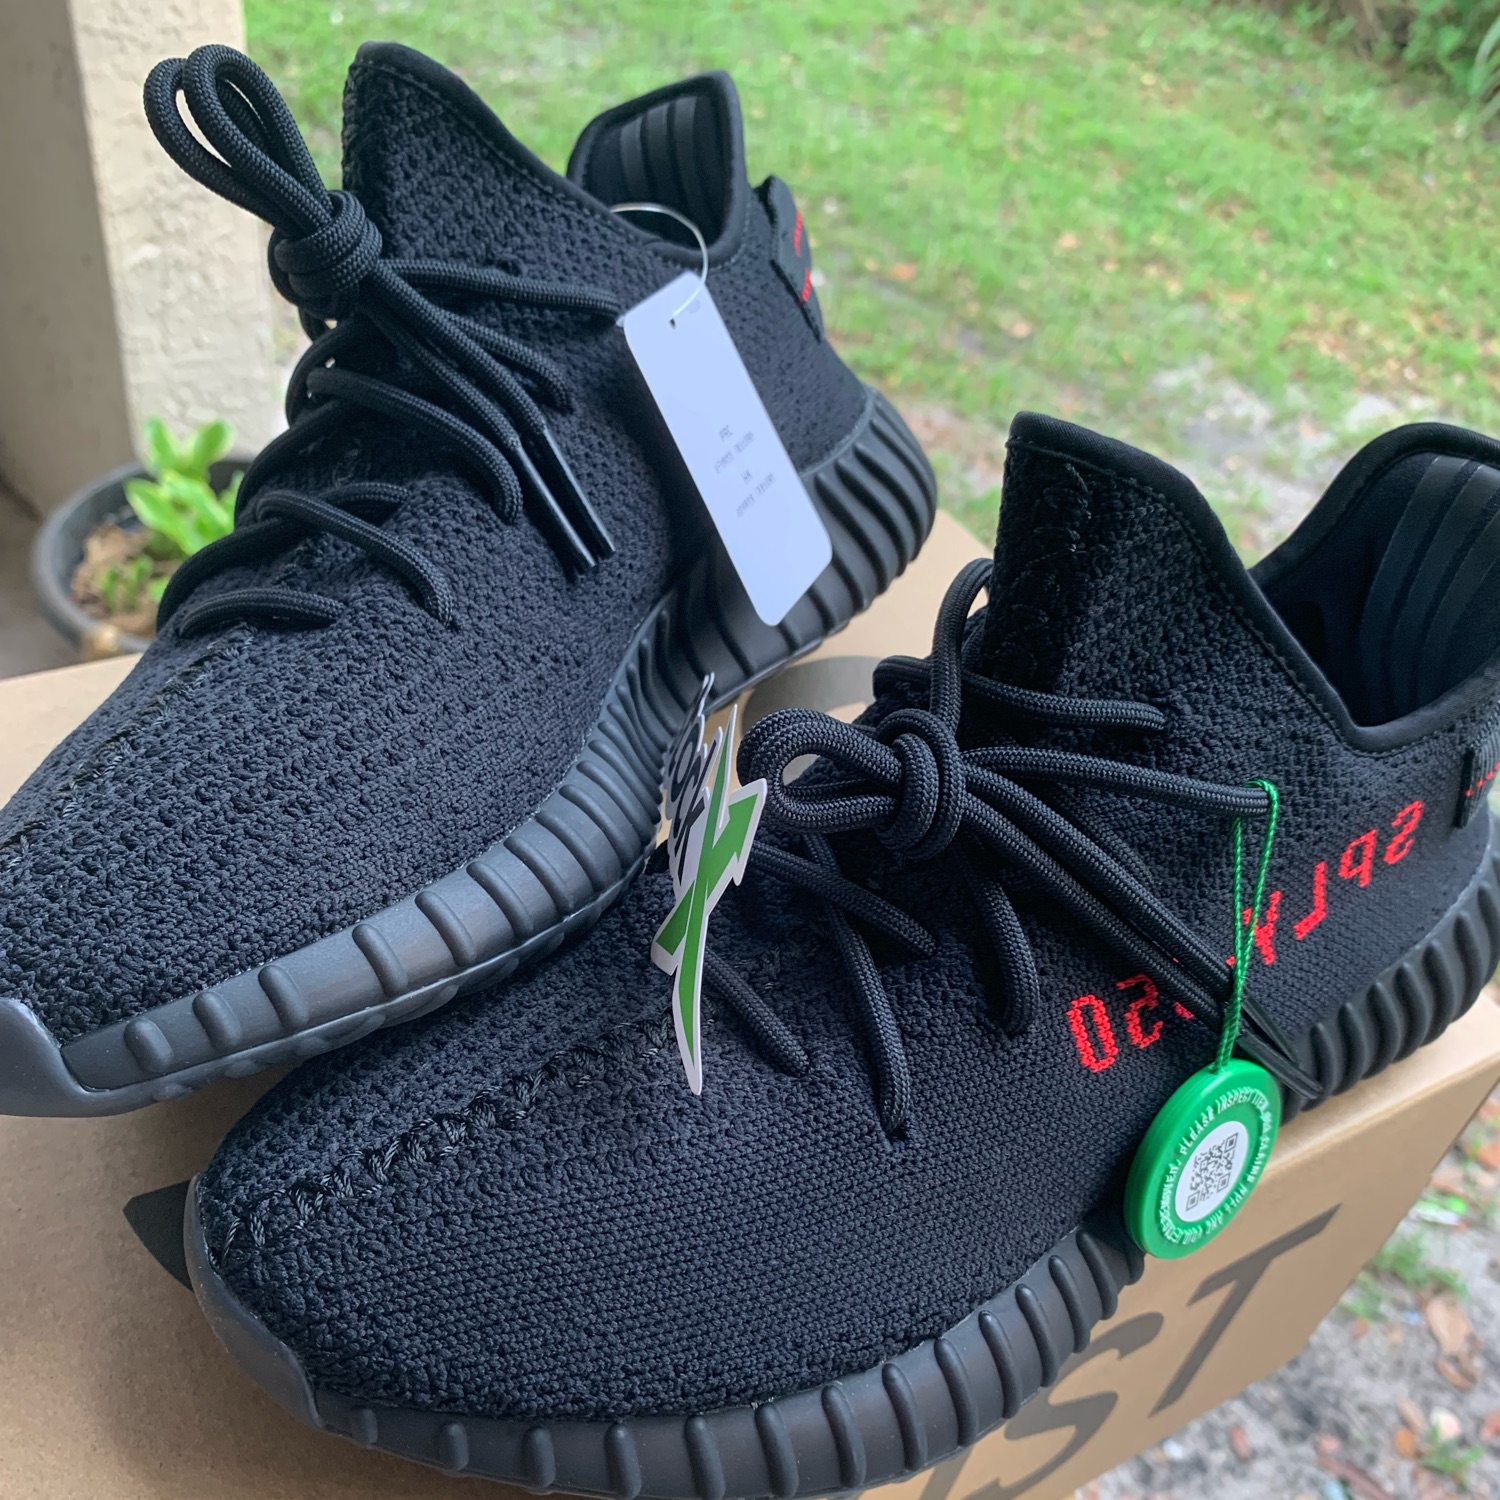 promo code 22437 3097f Adidas Yeezy Boost 350 V2 Black Red 2017 Bred